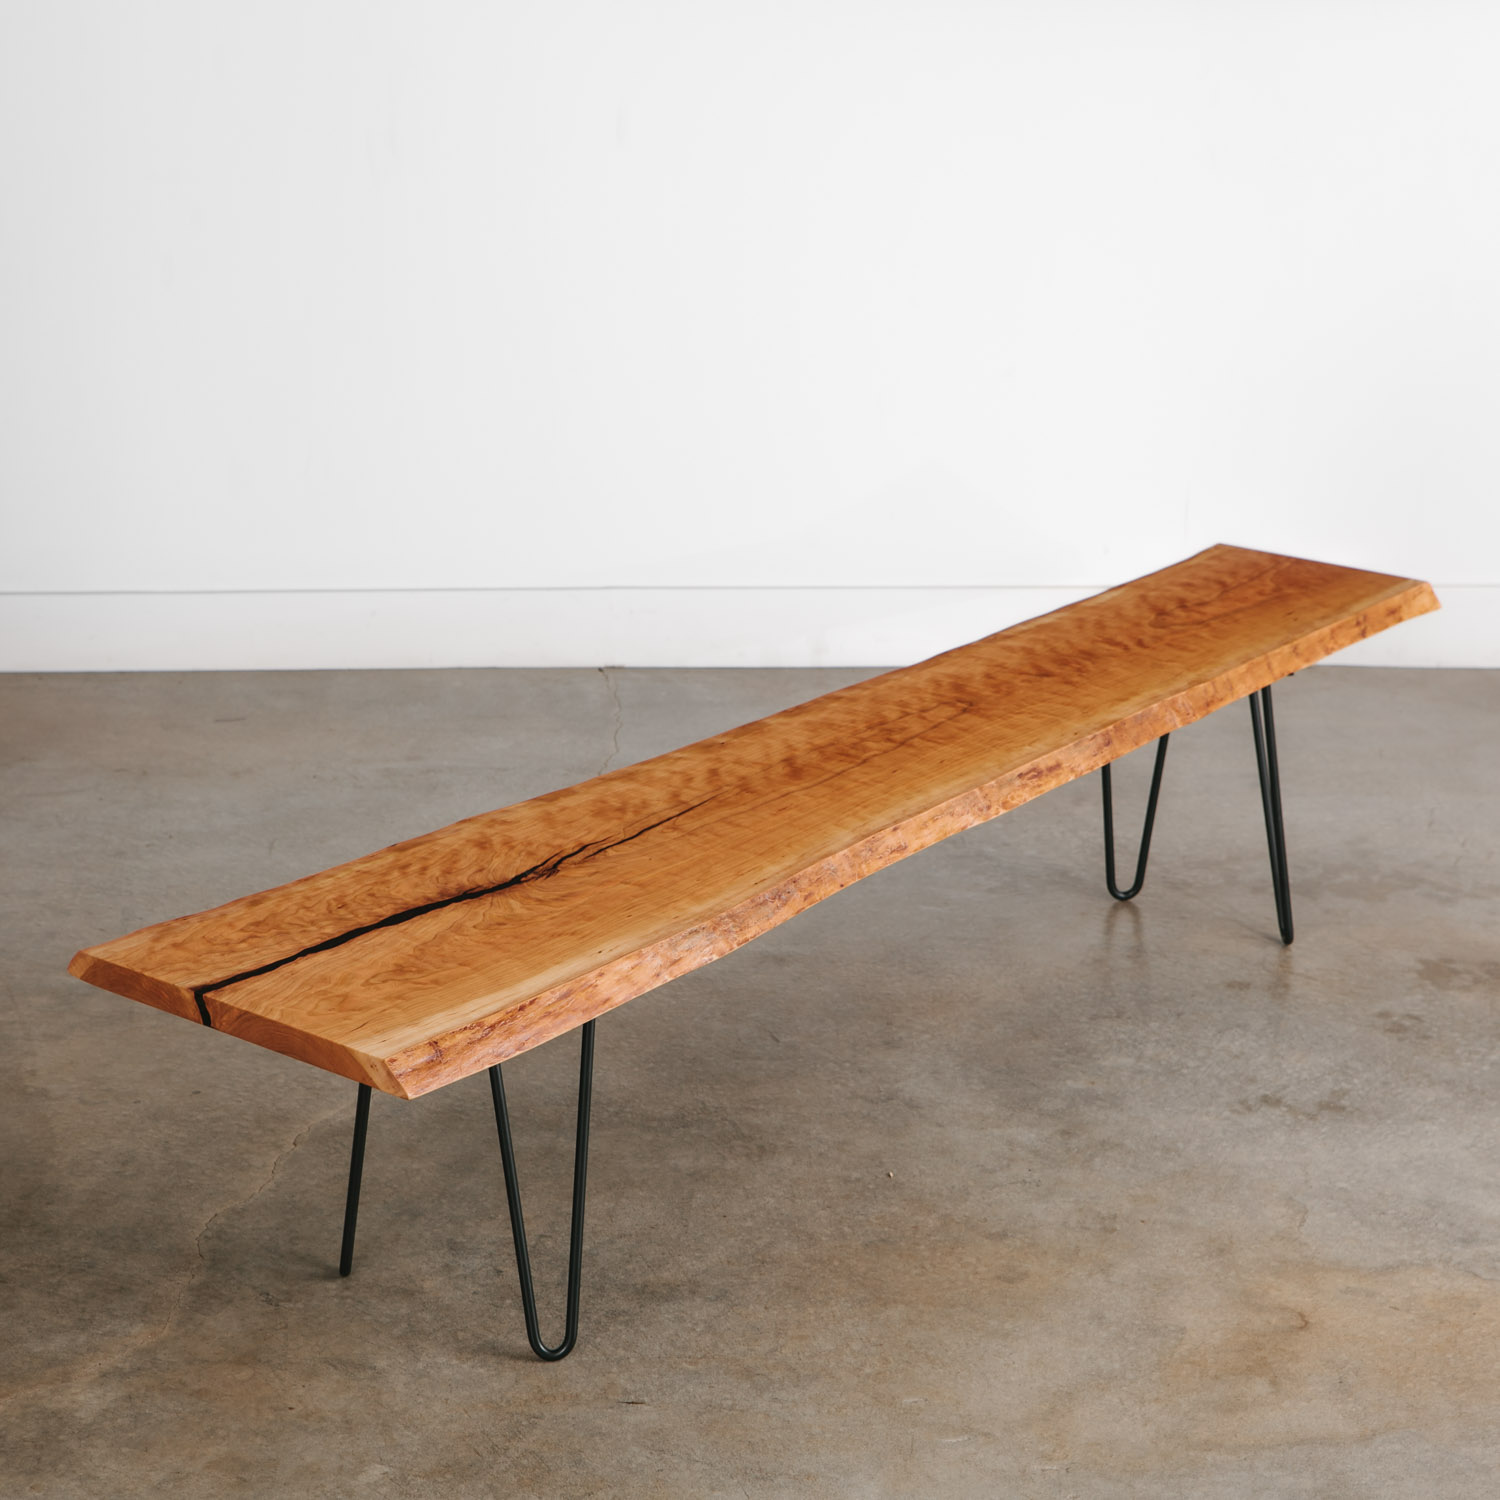 Picture of: Live Edge Bench Hairpin Legs Elko Hardwoods Modern Live Edge Furniture Dining Coffee Tables Desks Benches